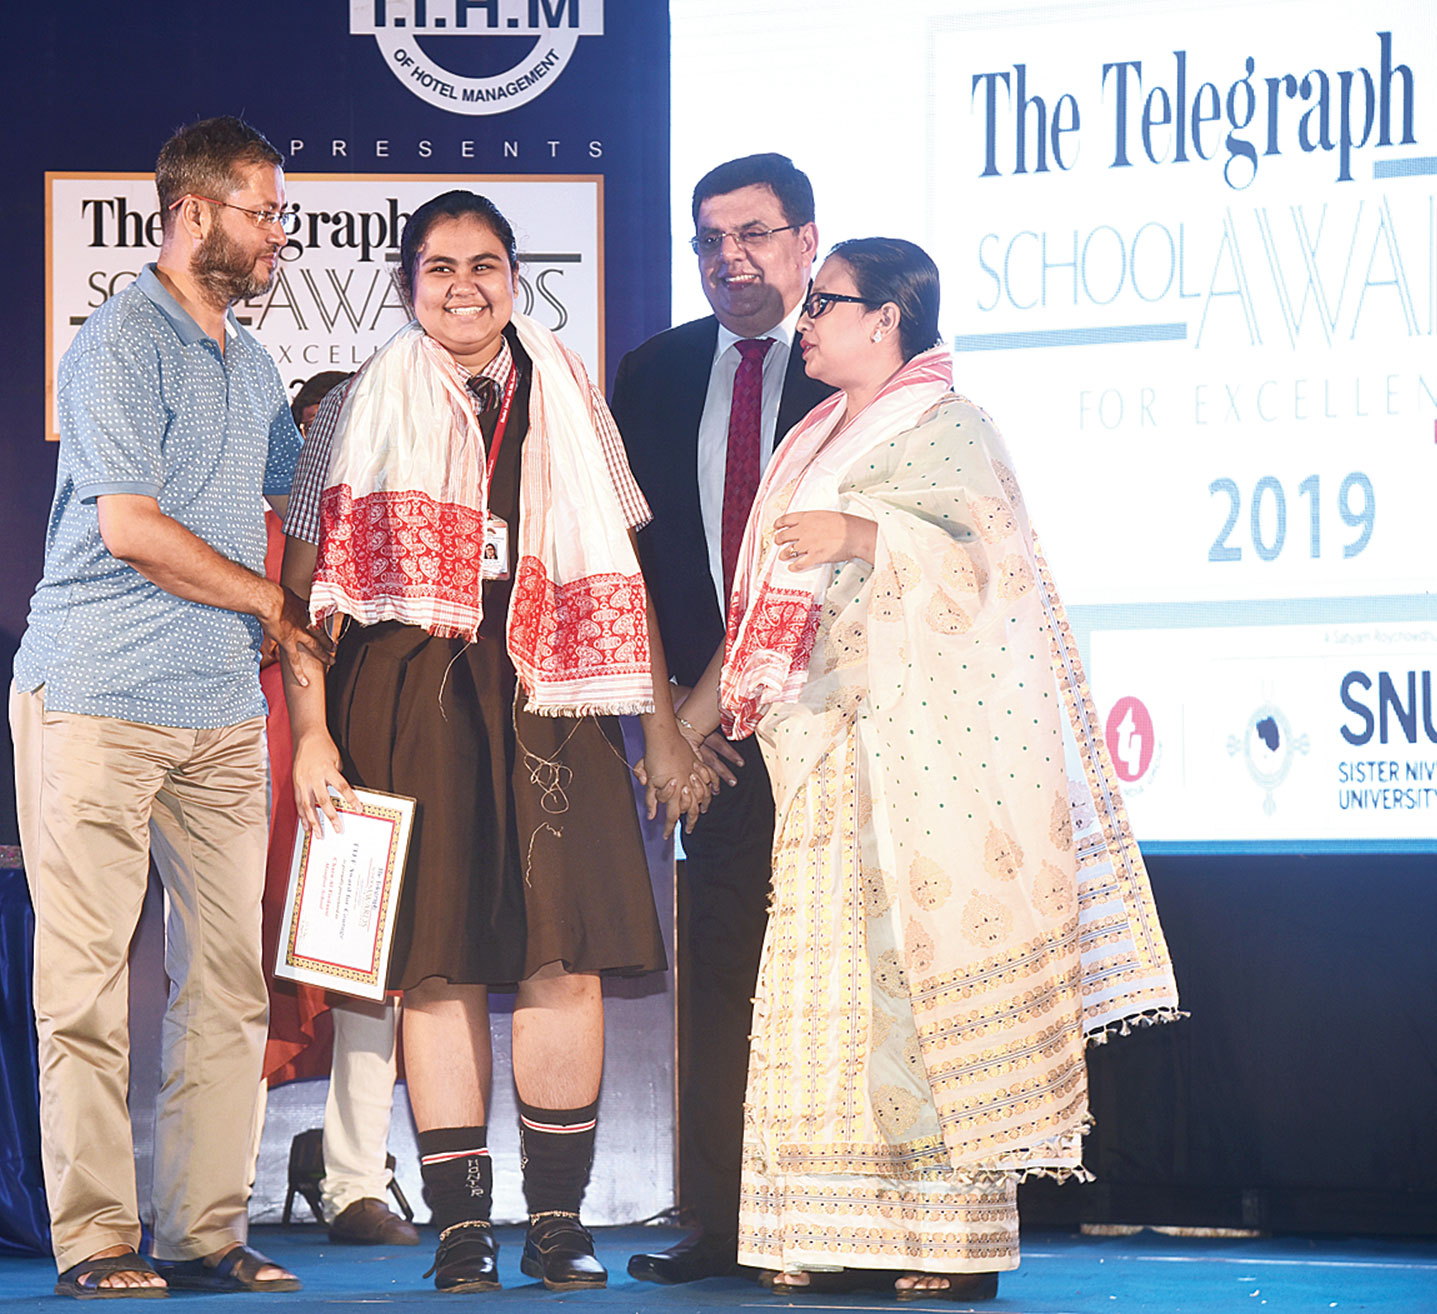 The Telegraph School Awards for Excellence 2019 witnessed a rare moment when Chara Al-Firdausi (second from left) came face to face with her mother Atifa Shahnaz Begum (right) on stage.